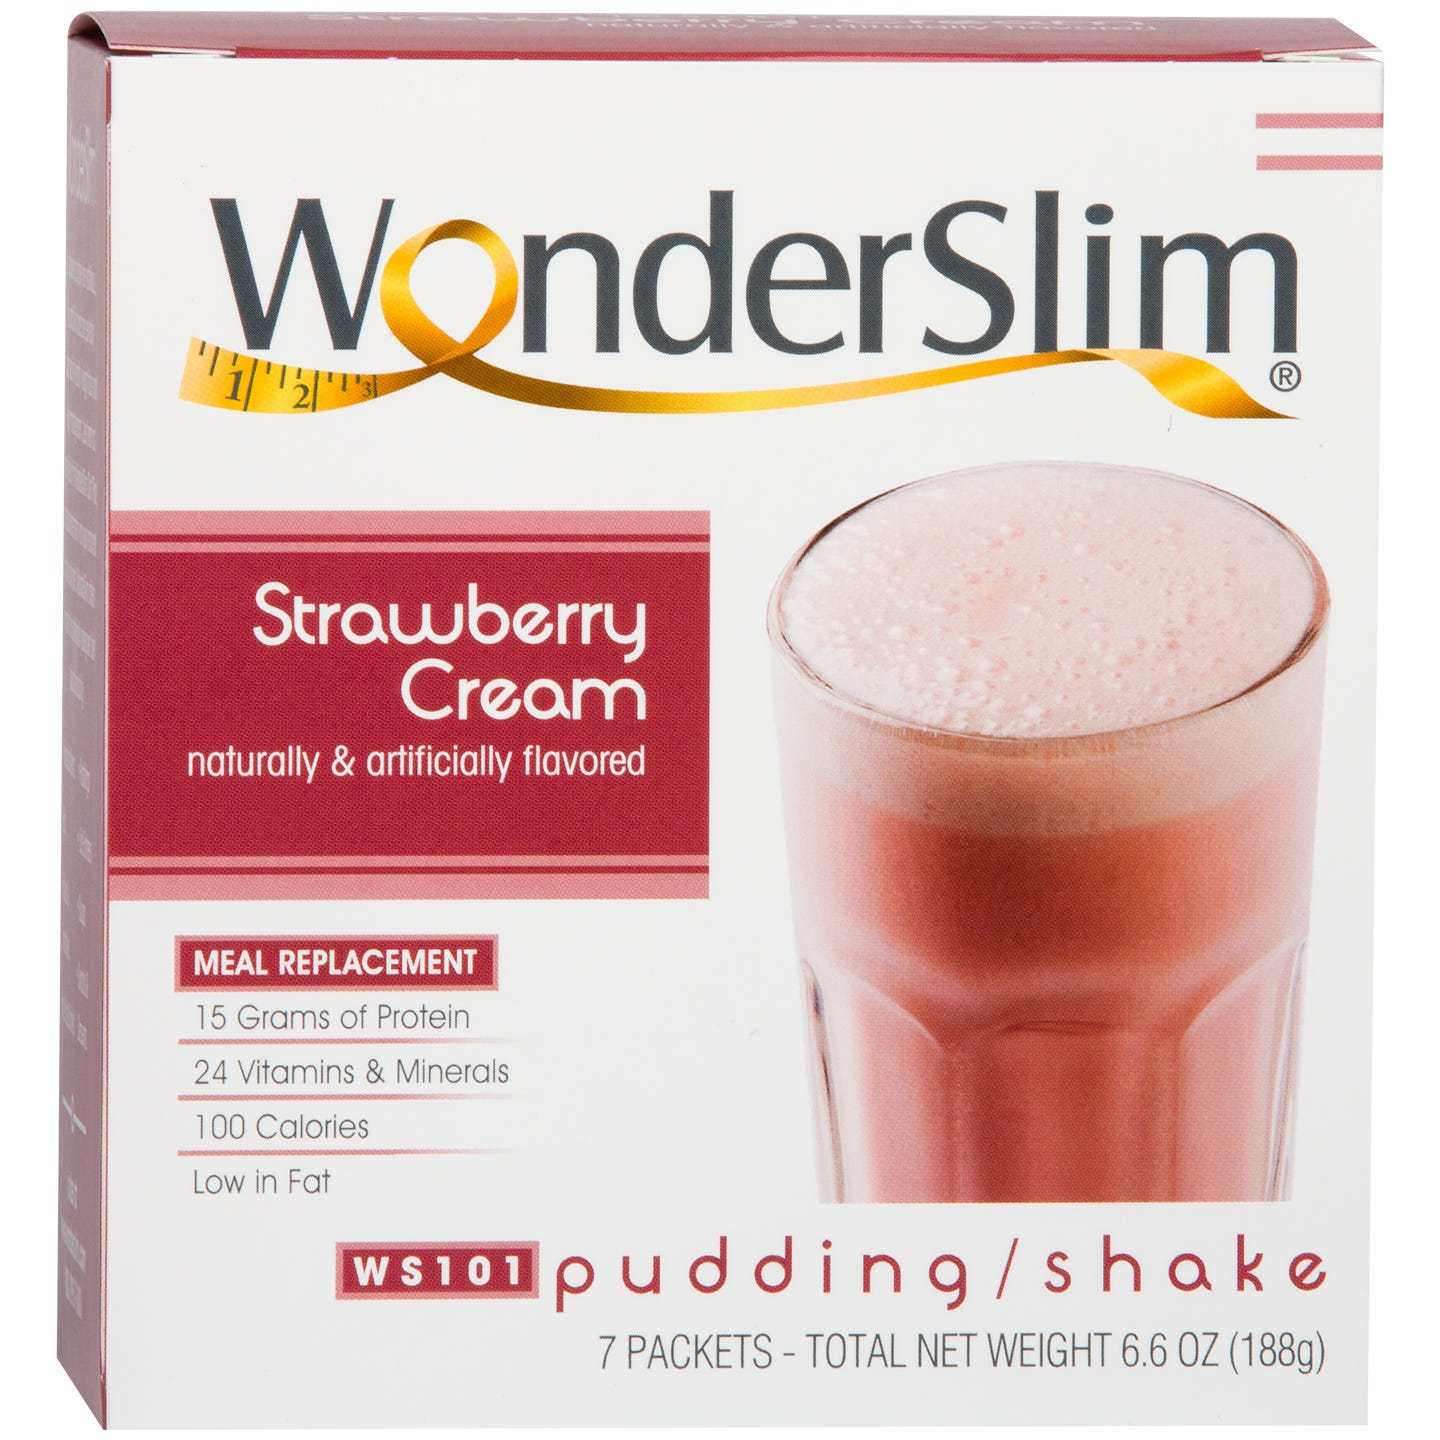 WonderSlim Meal Replacement Pudding/Shake Strawberry Cream (7 Ct)